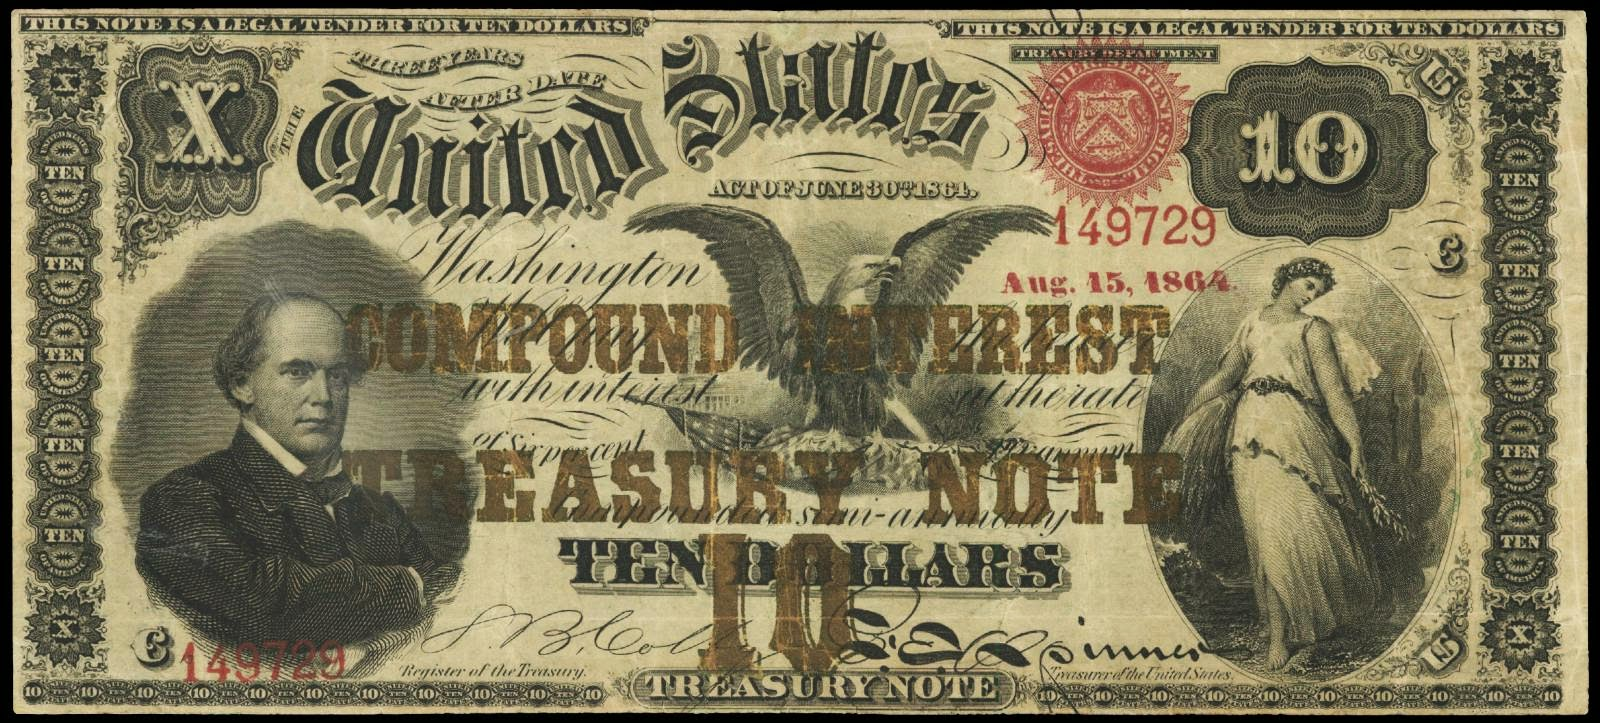 United States currency 10 Dollar Compound Interest Treasury Note 1864